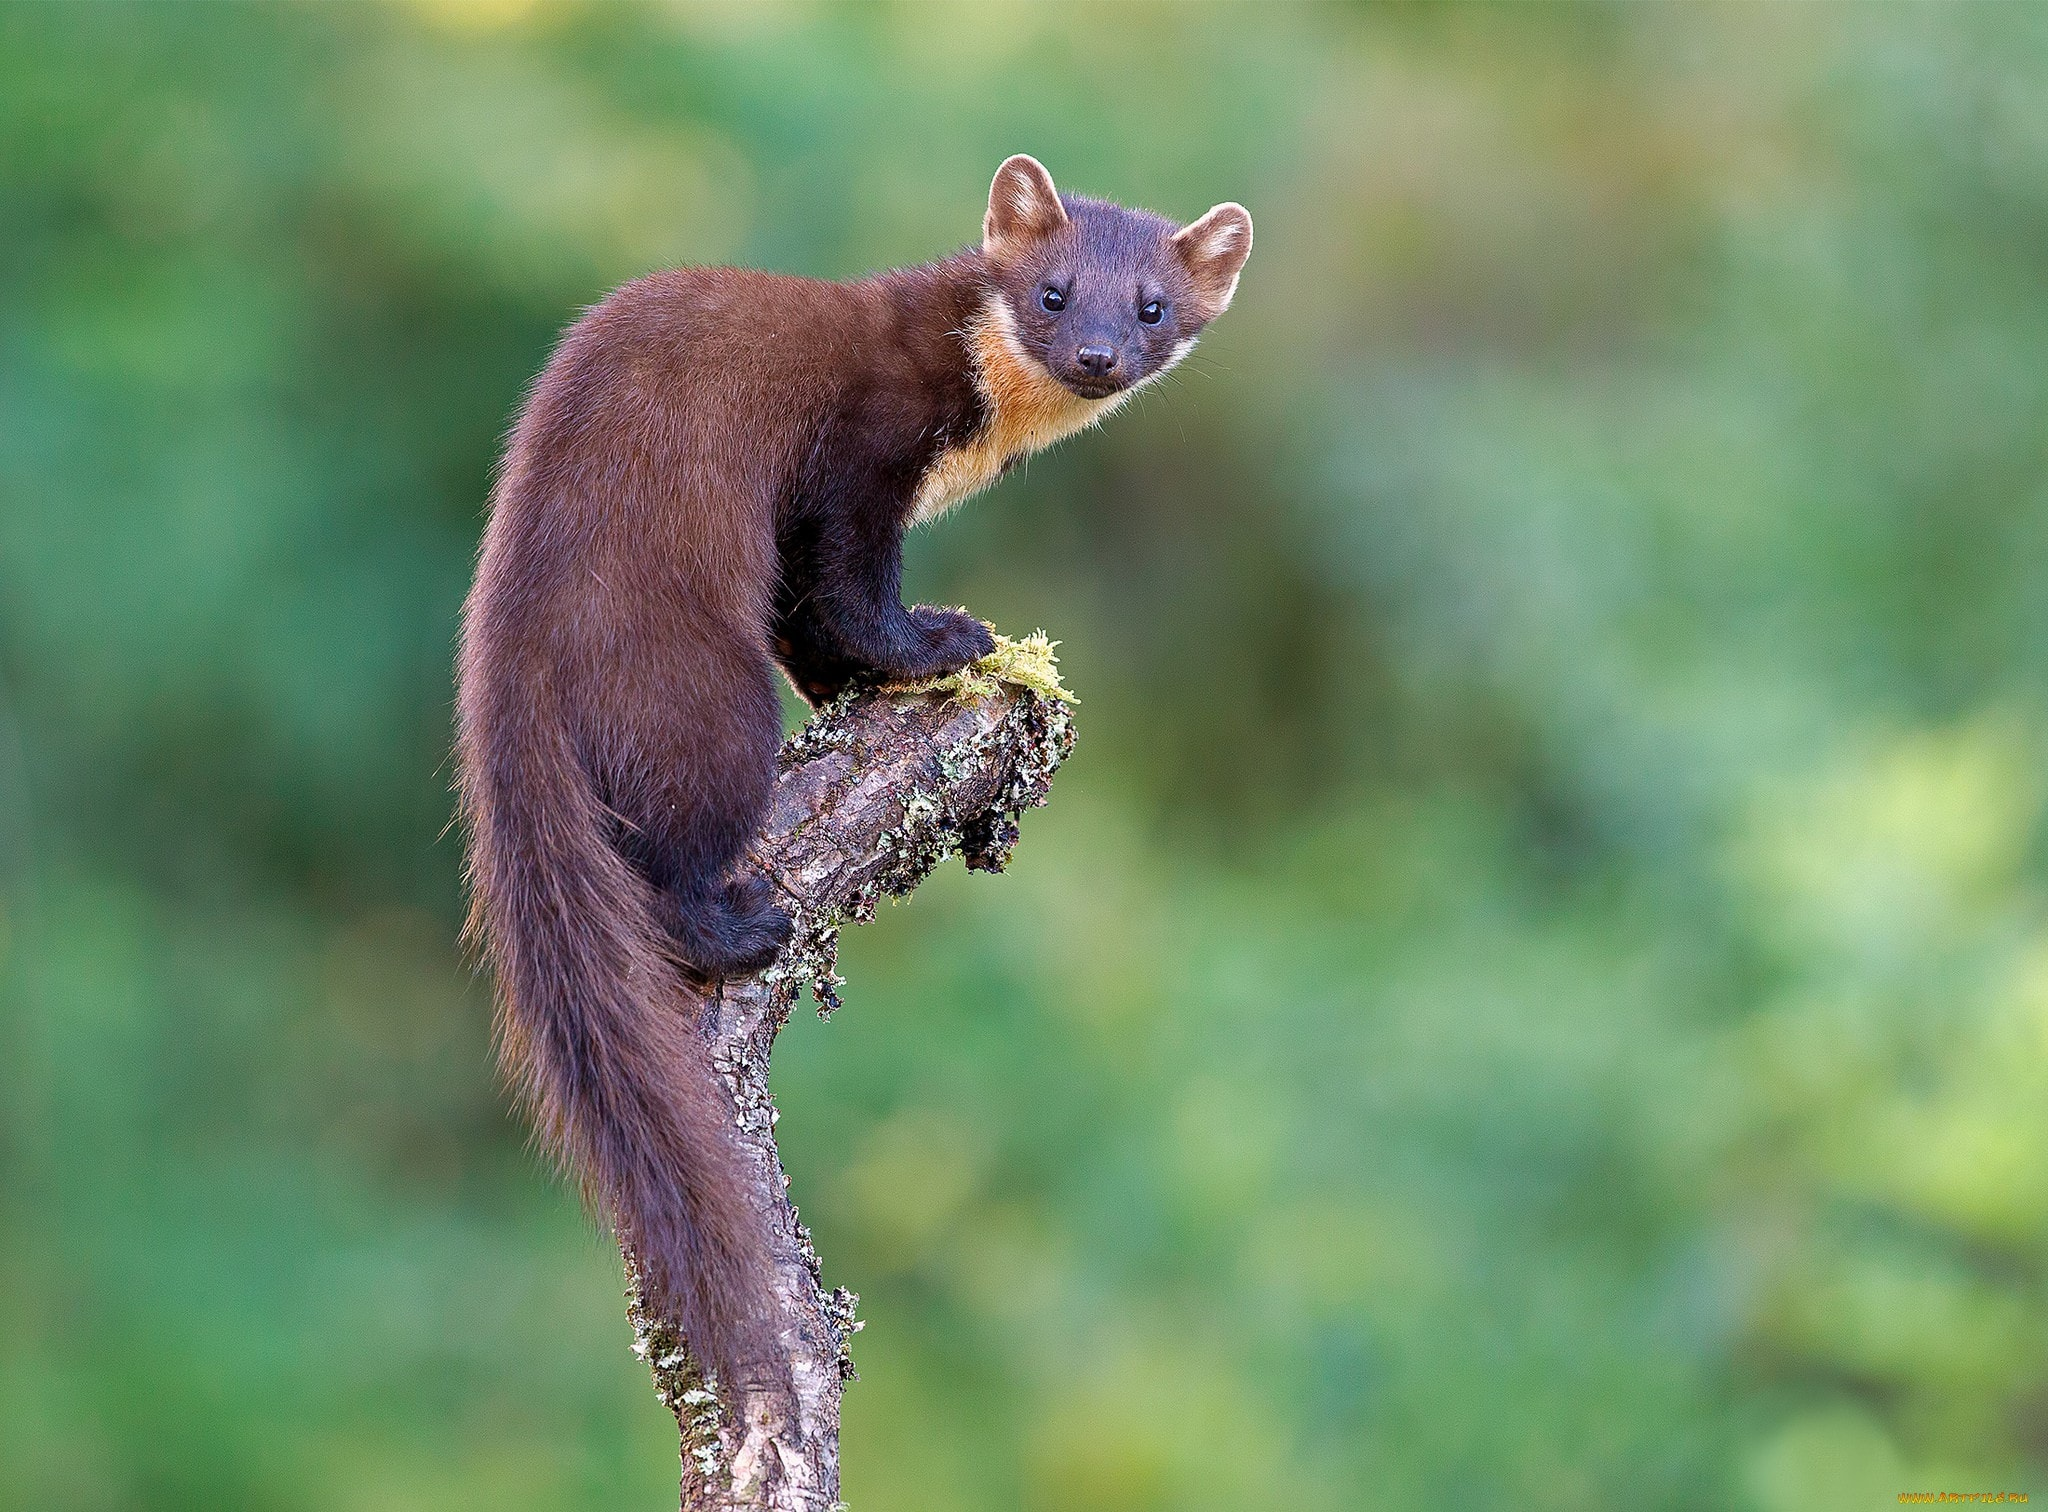 Marten full hd wallpapers